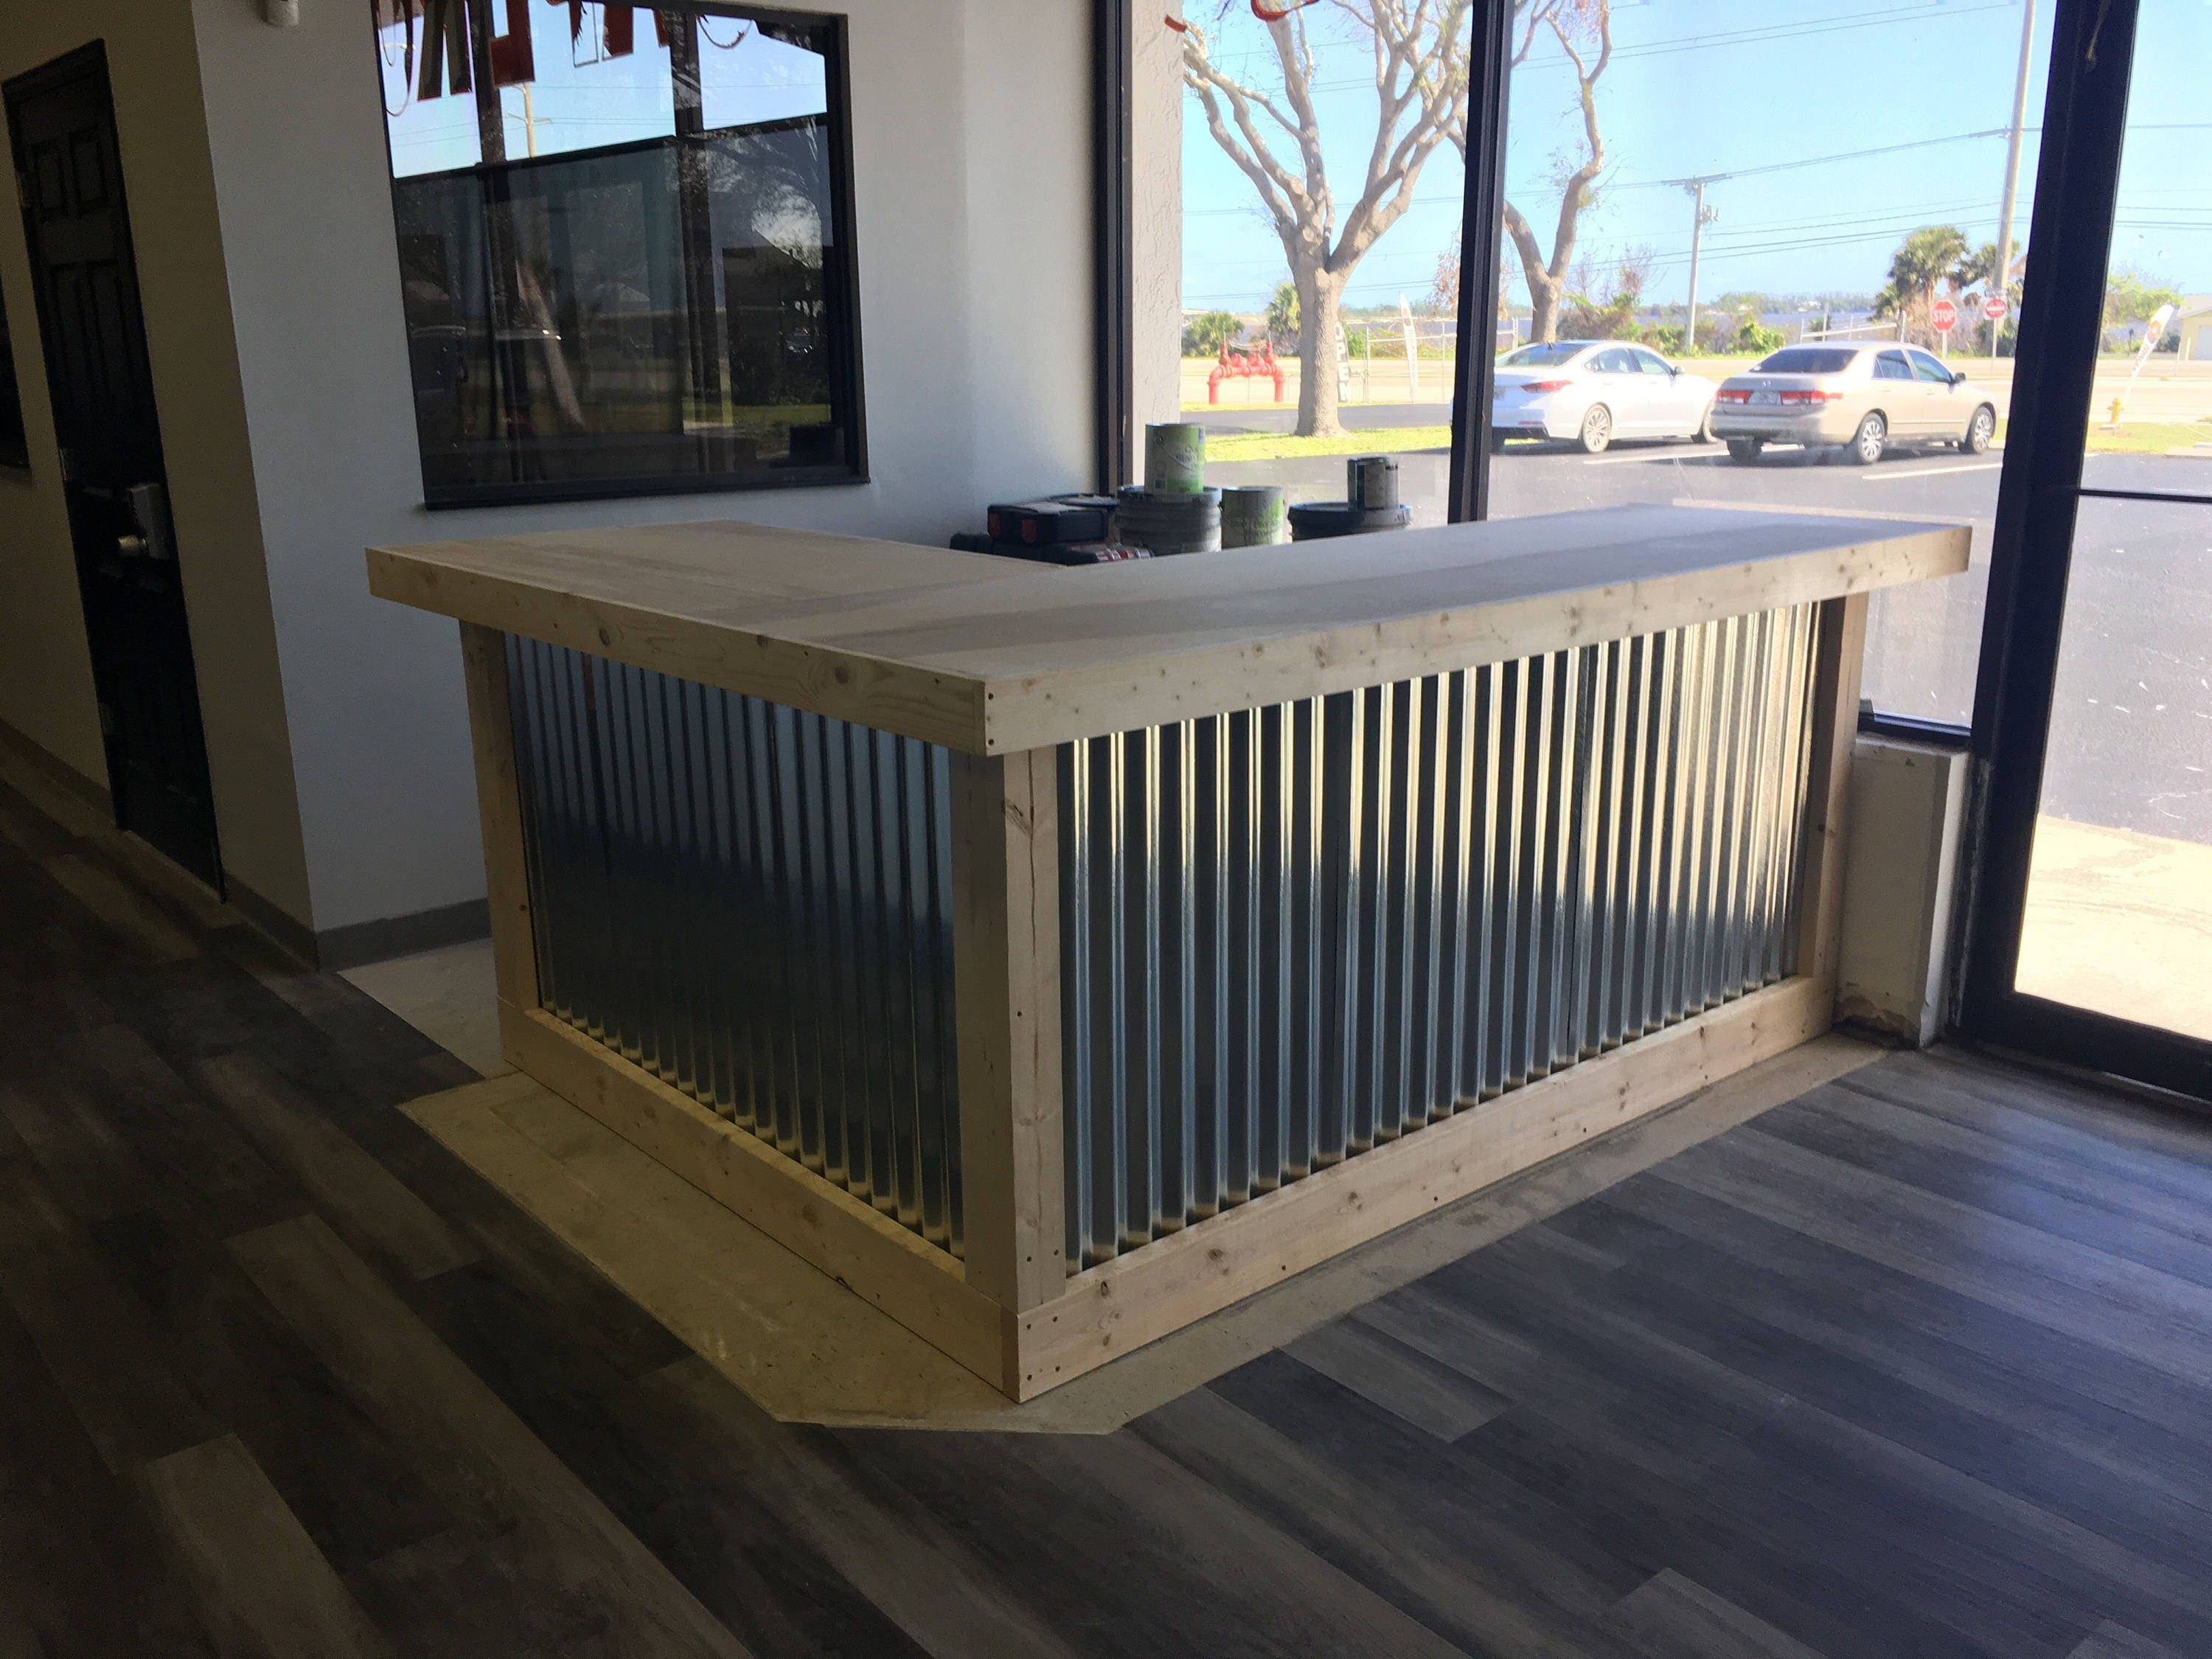 The L Shaped Counter 8 X 6 Foot Corrugated Metal Bar